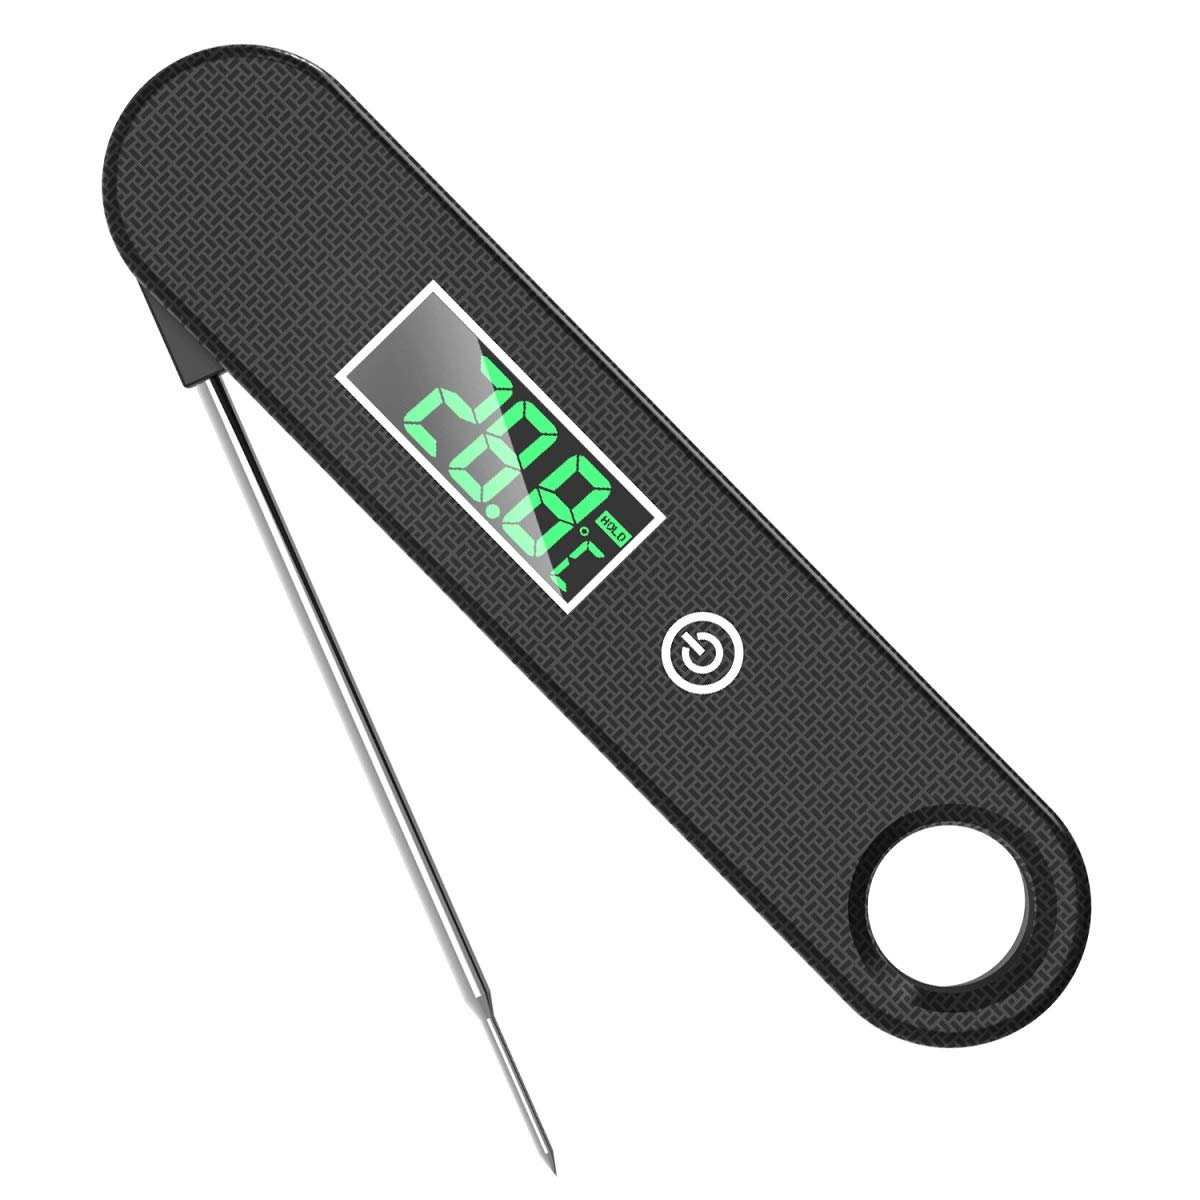 Meat Thermometer for Cooking LED Display, Digital Outdoor Thermometer Instant Read for Grilling Oven Adults Food Candy Turkey BBQ Milk Water...